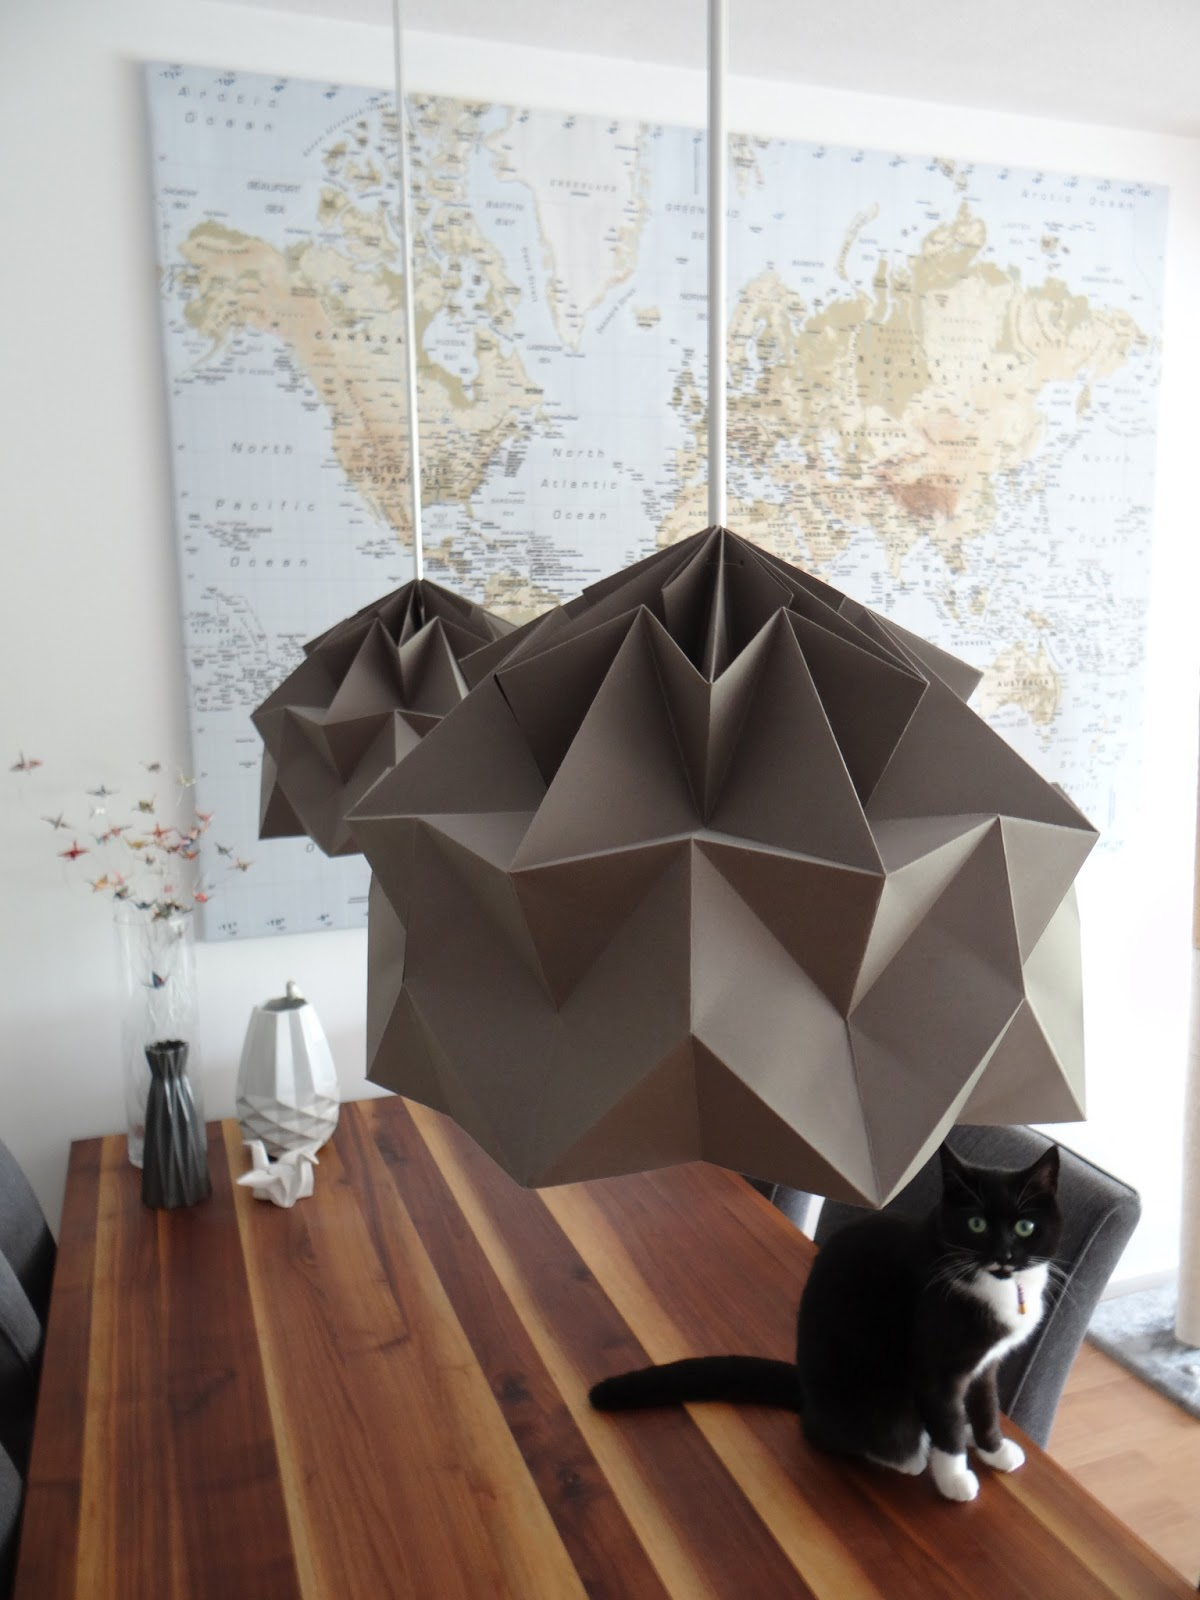 How To Make Origami Magic Ball And Folding Instructions | 1600x1200